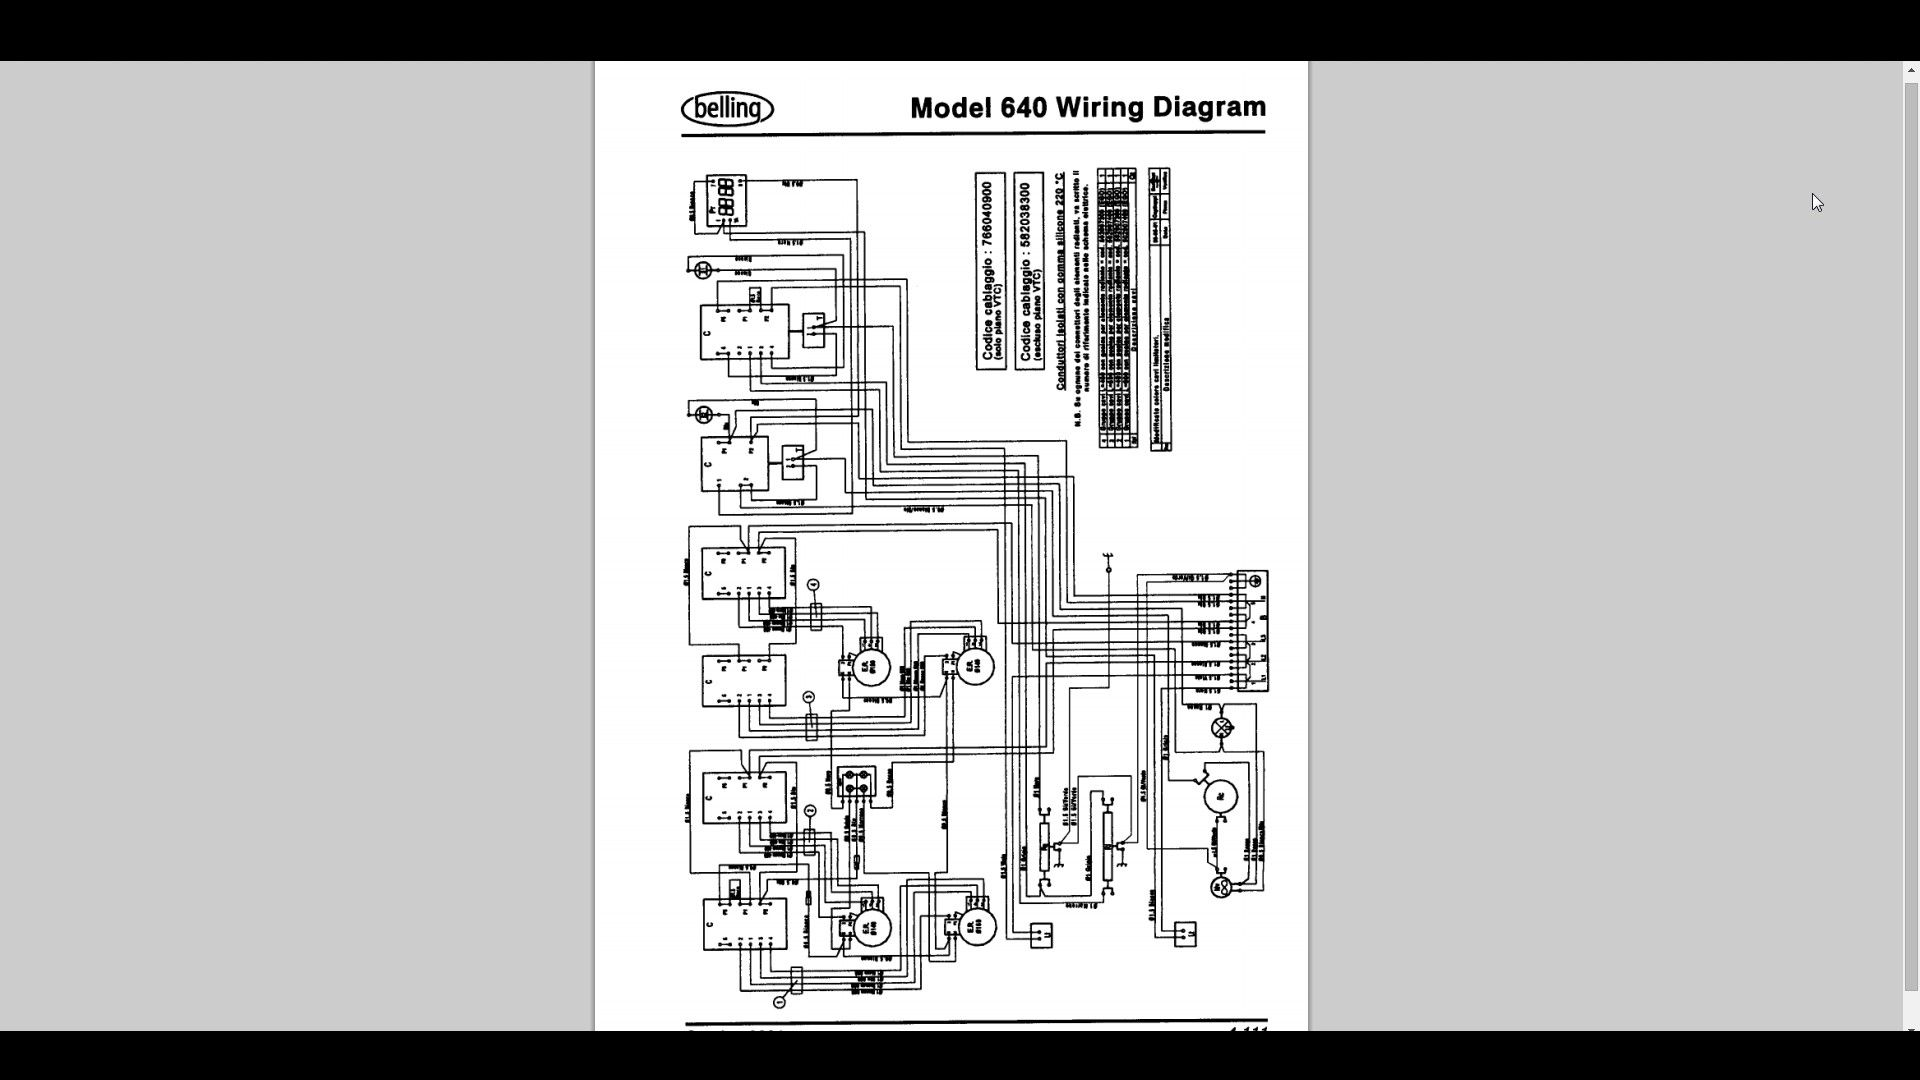 Double Oven Electric Wiring Not Lossing Diagram Wall I Need A For Belling Selector Requirements Electrical